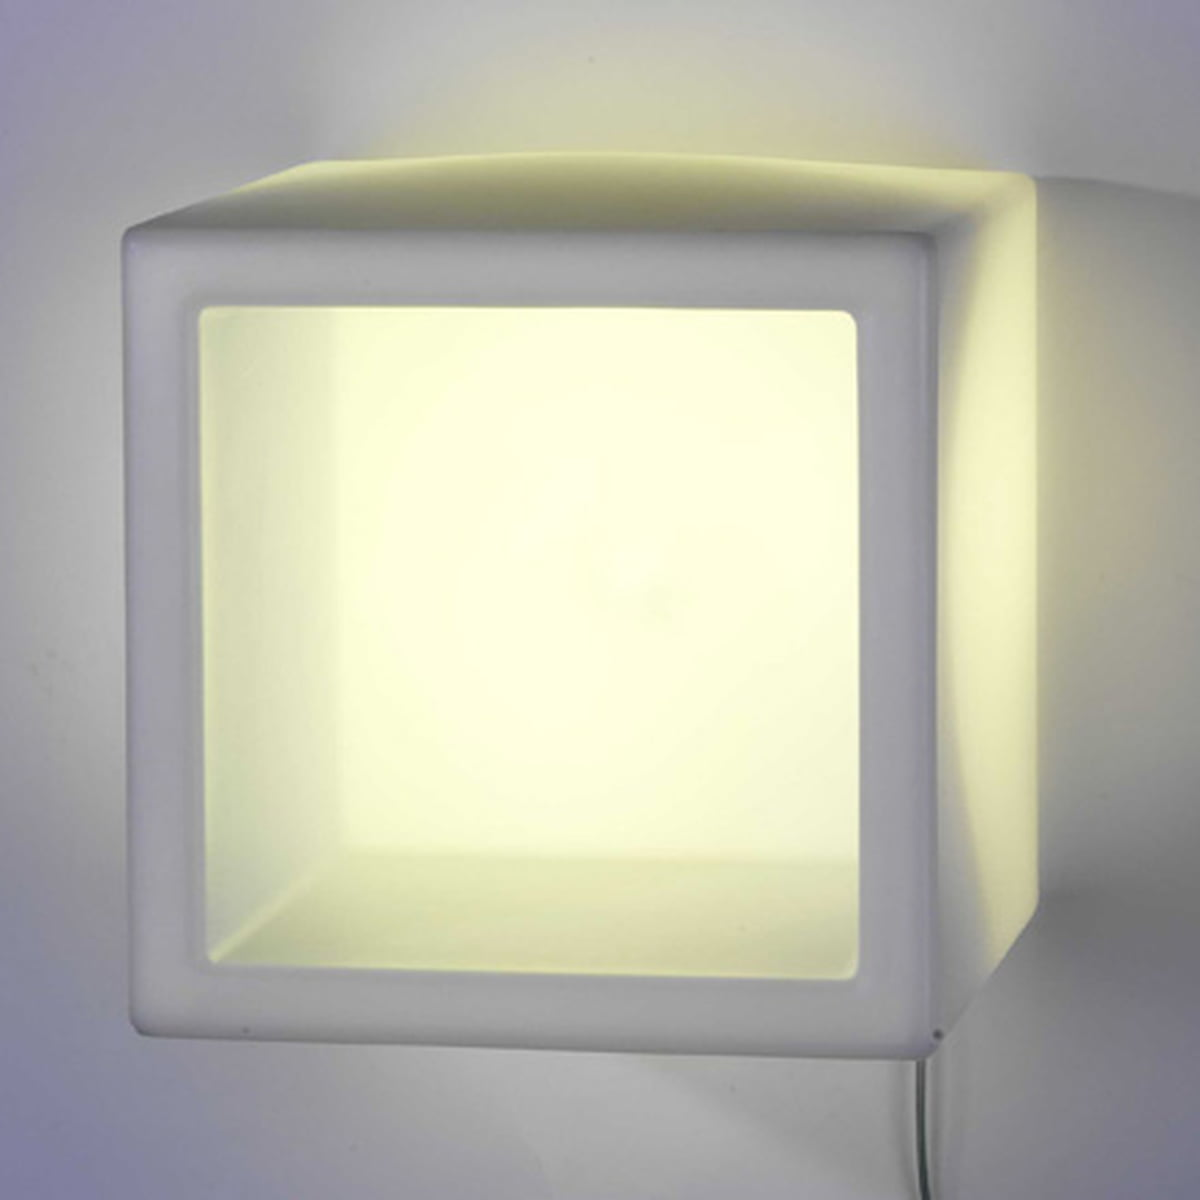 lux-us light cube by klein & more / xxd